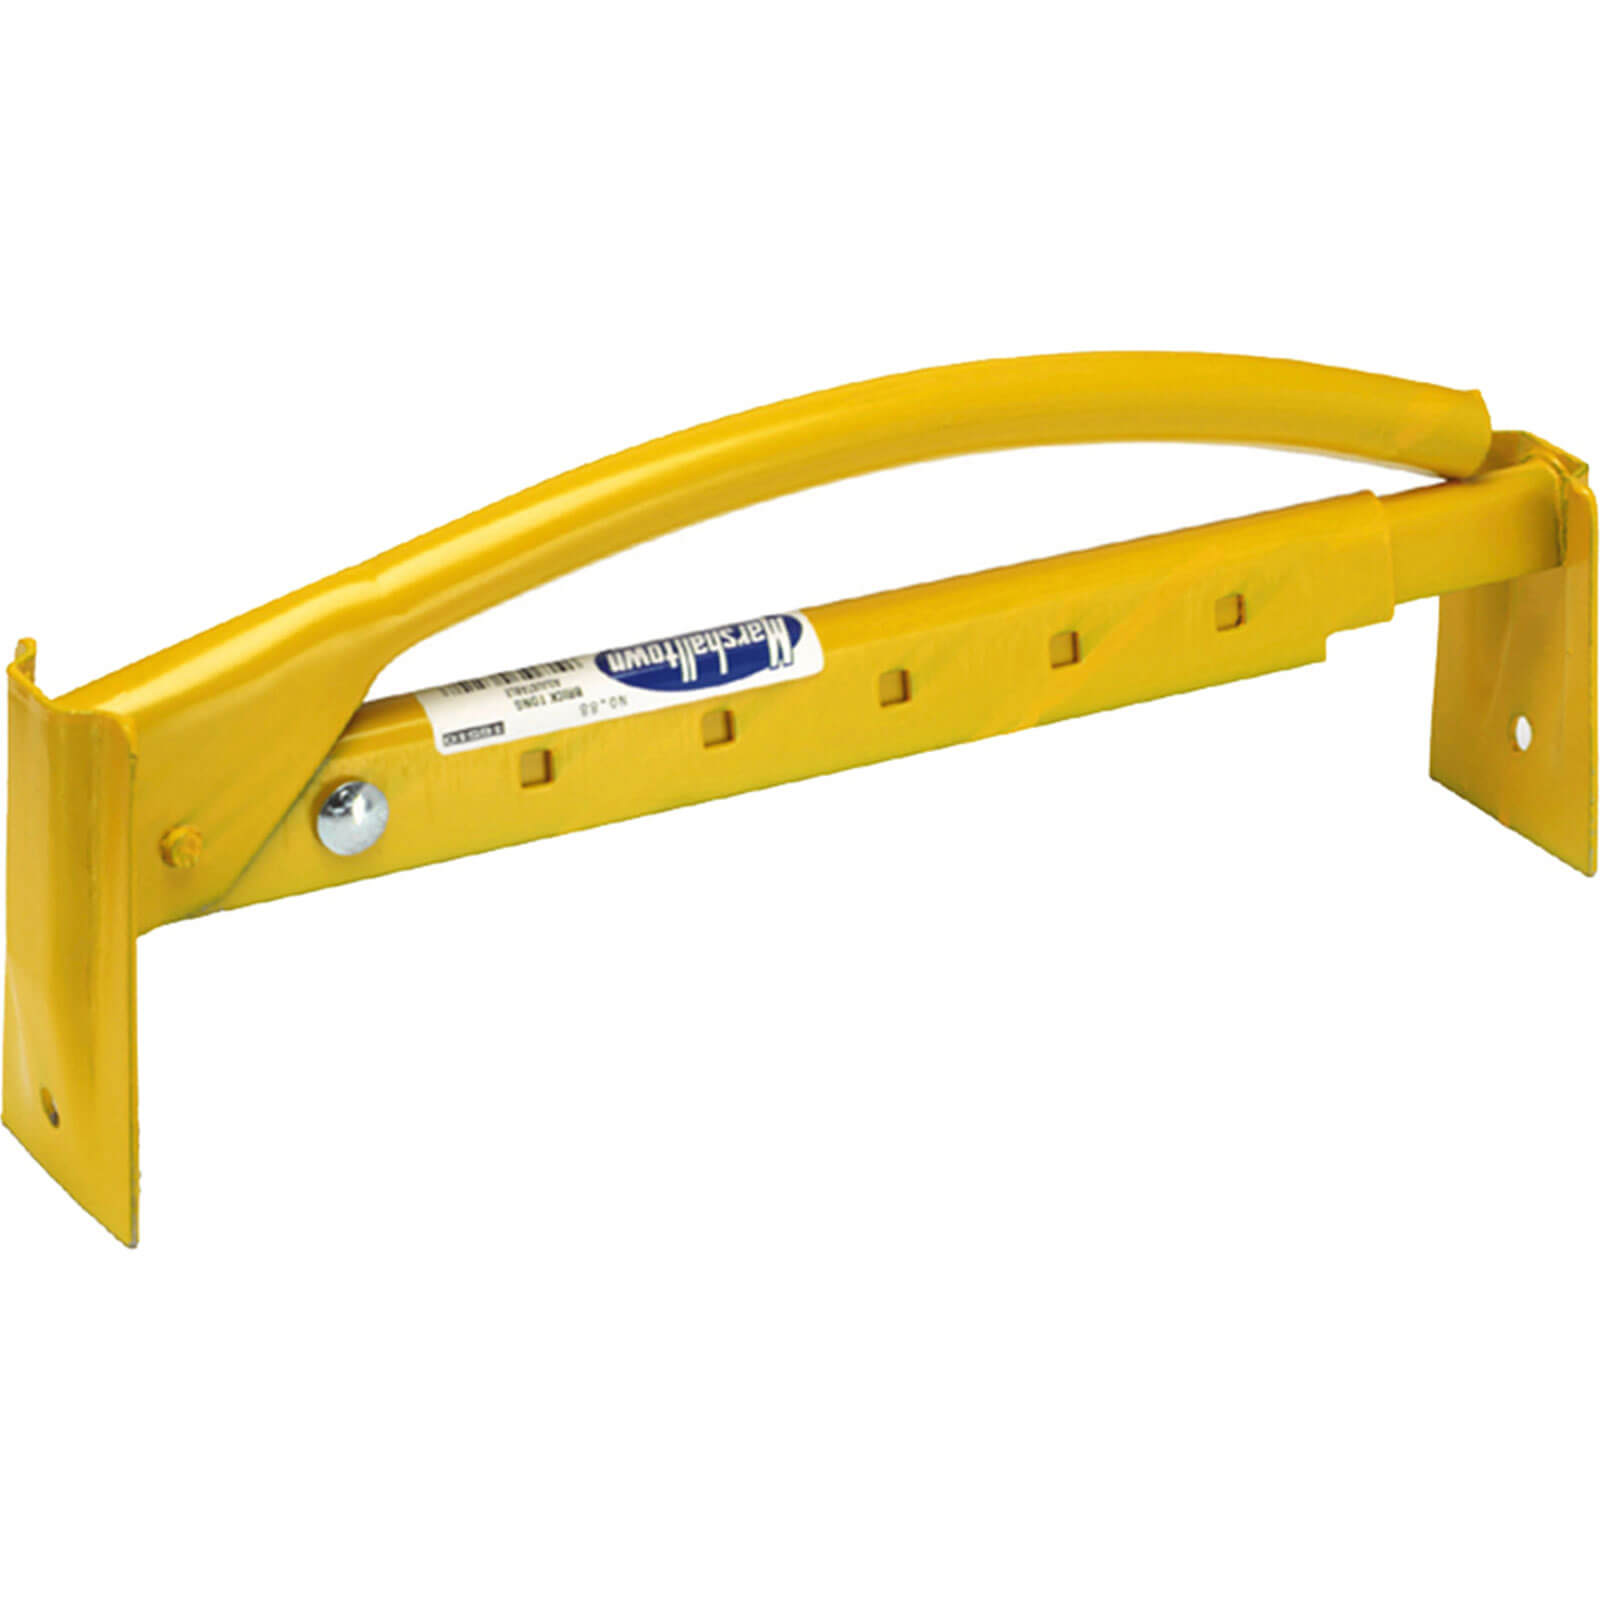 Marshalltown 88 Adjustable Brick Lifter Tongs